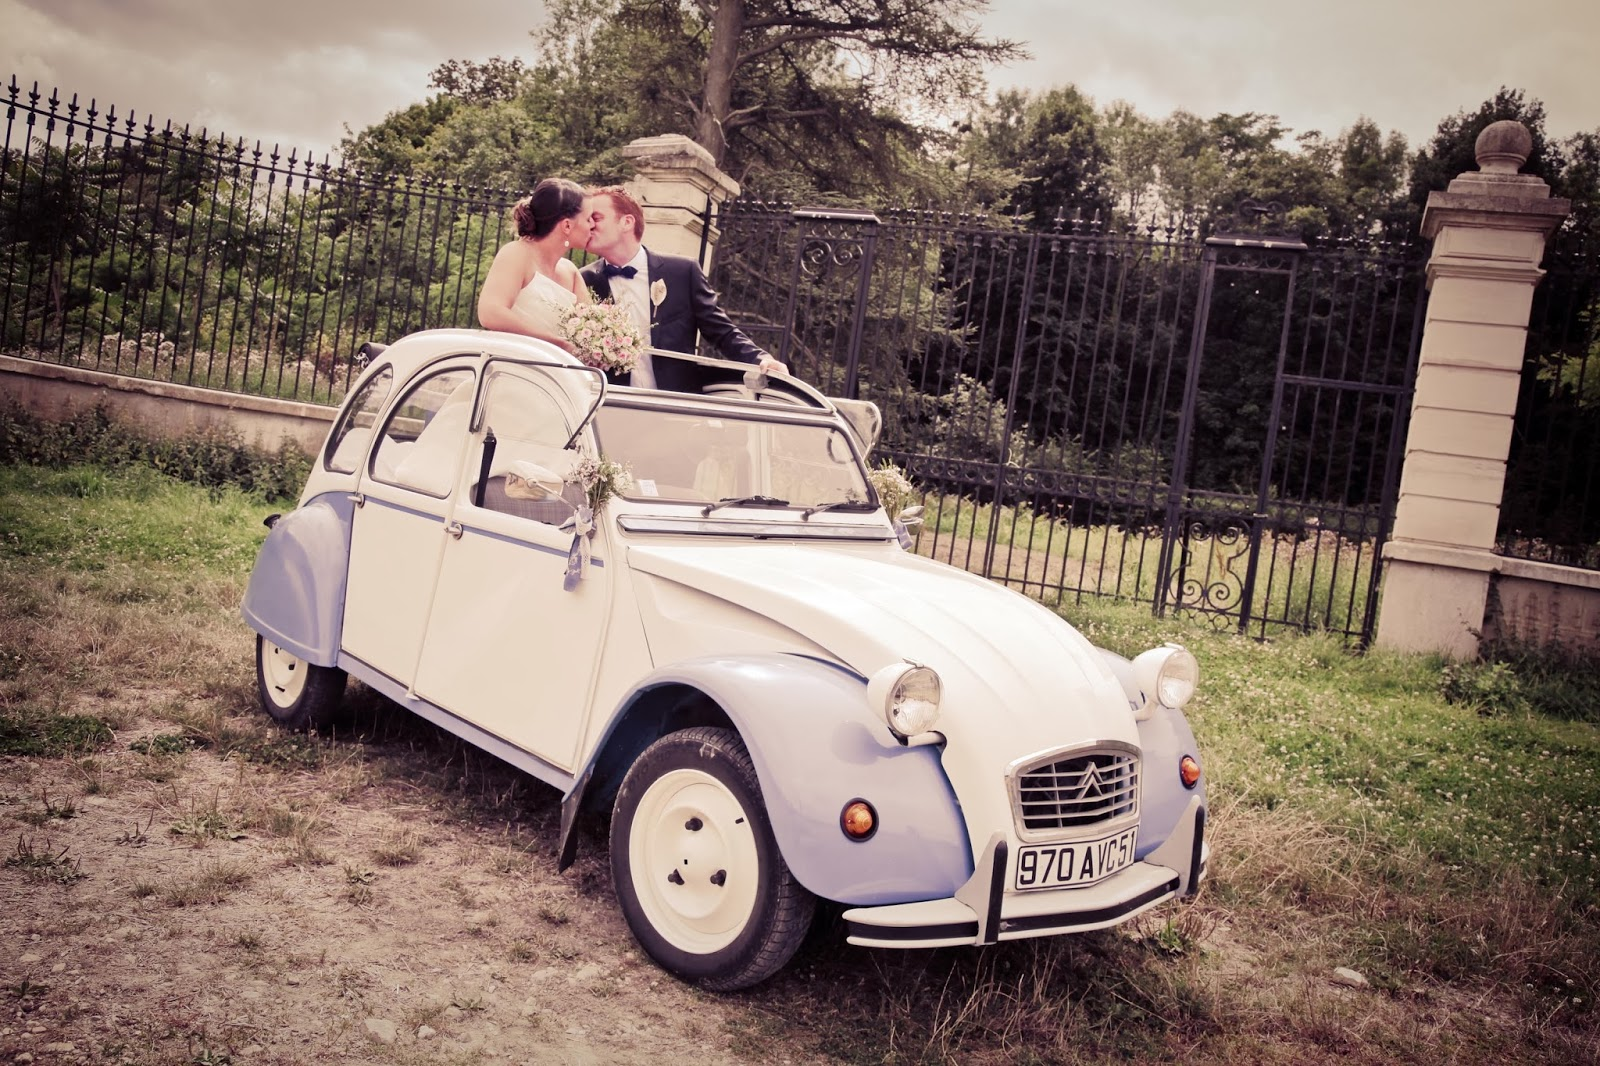 Bride and groom in the 2cv, french vintage car - Wedding photography by Elisabeth Perotin